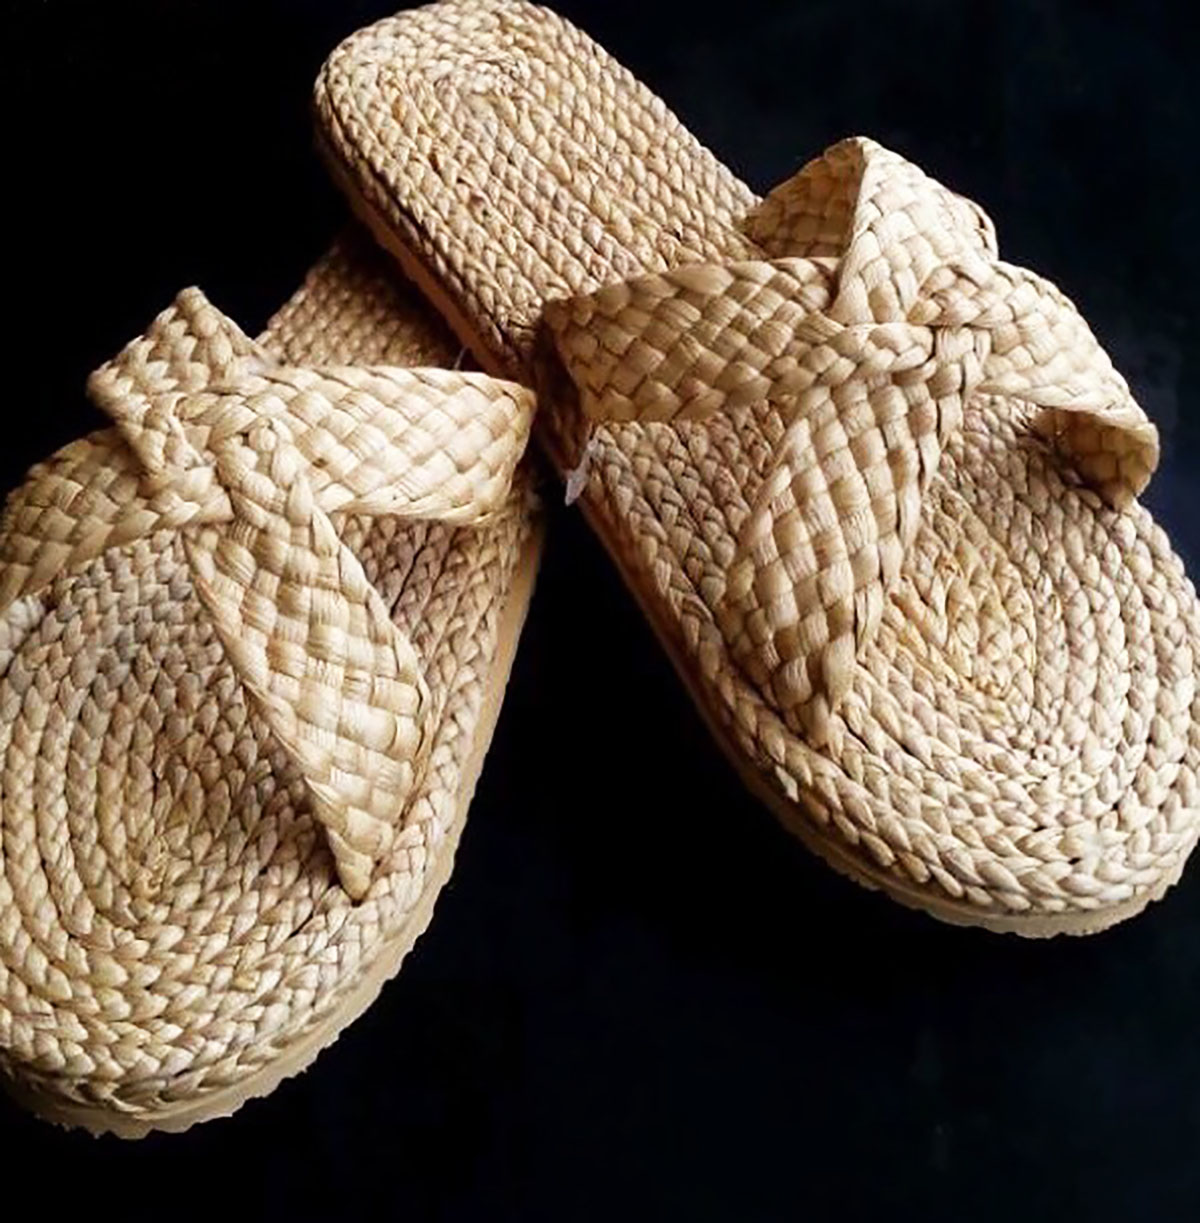 seagrass slipper from Thailand